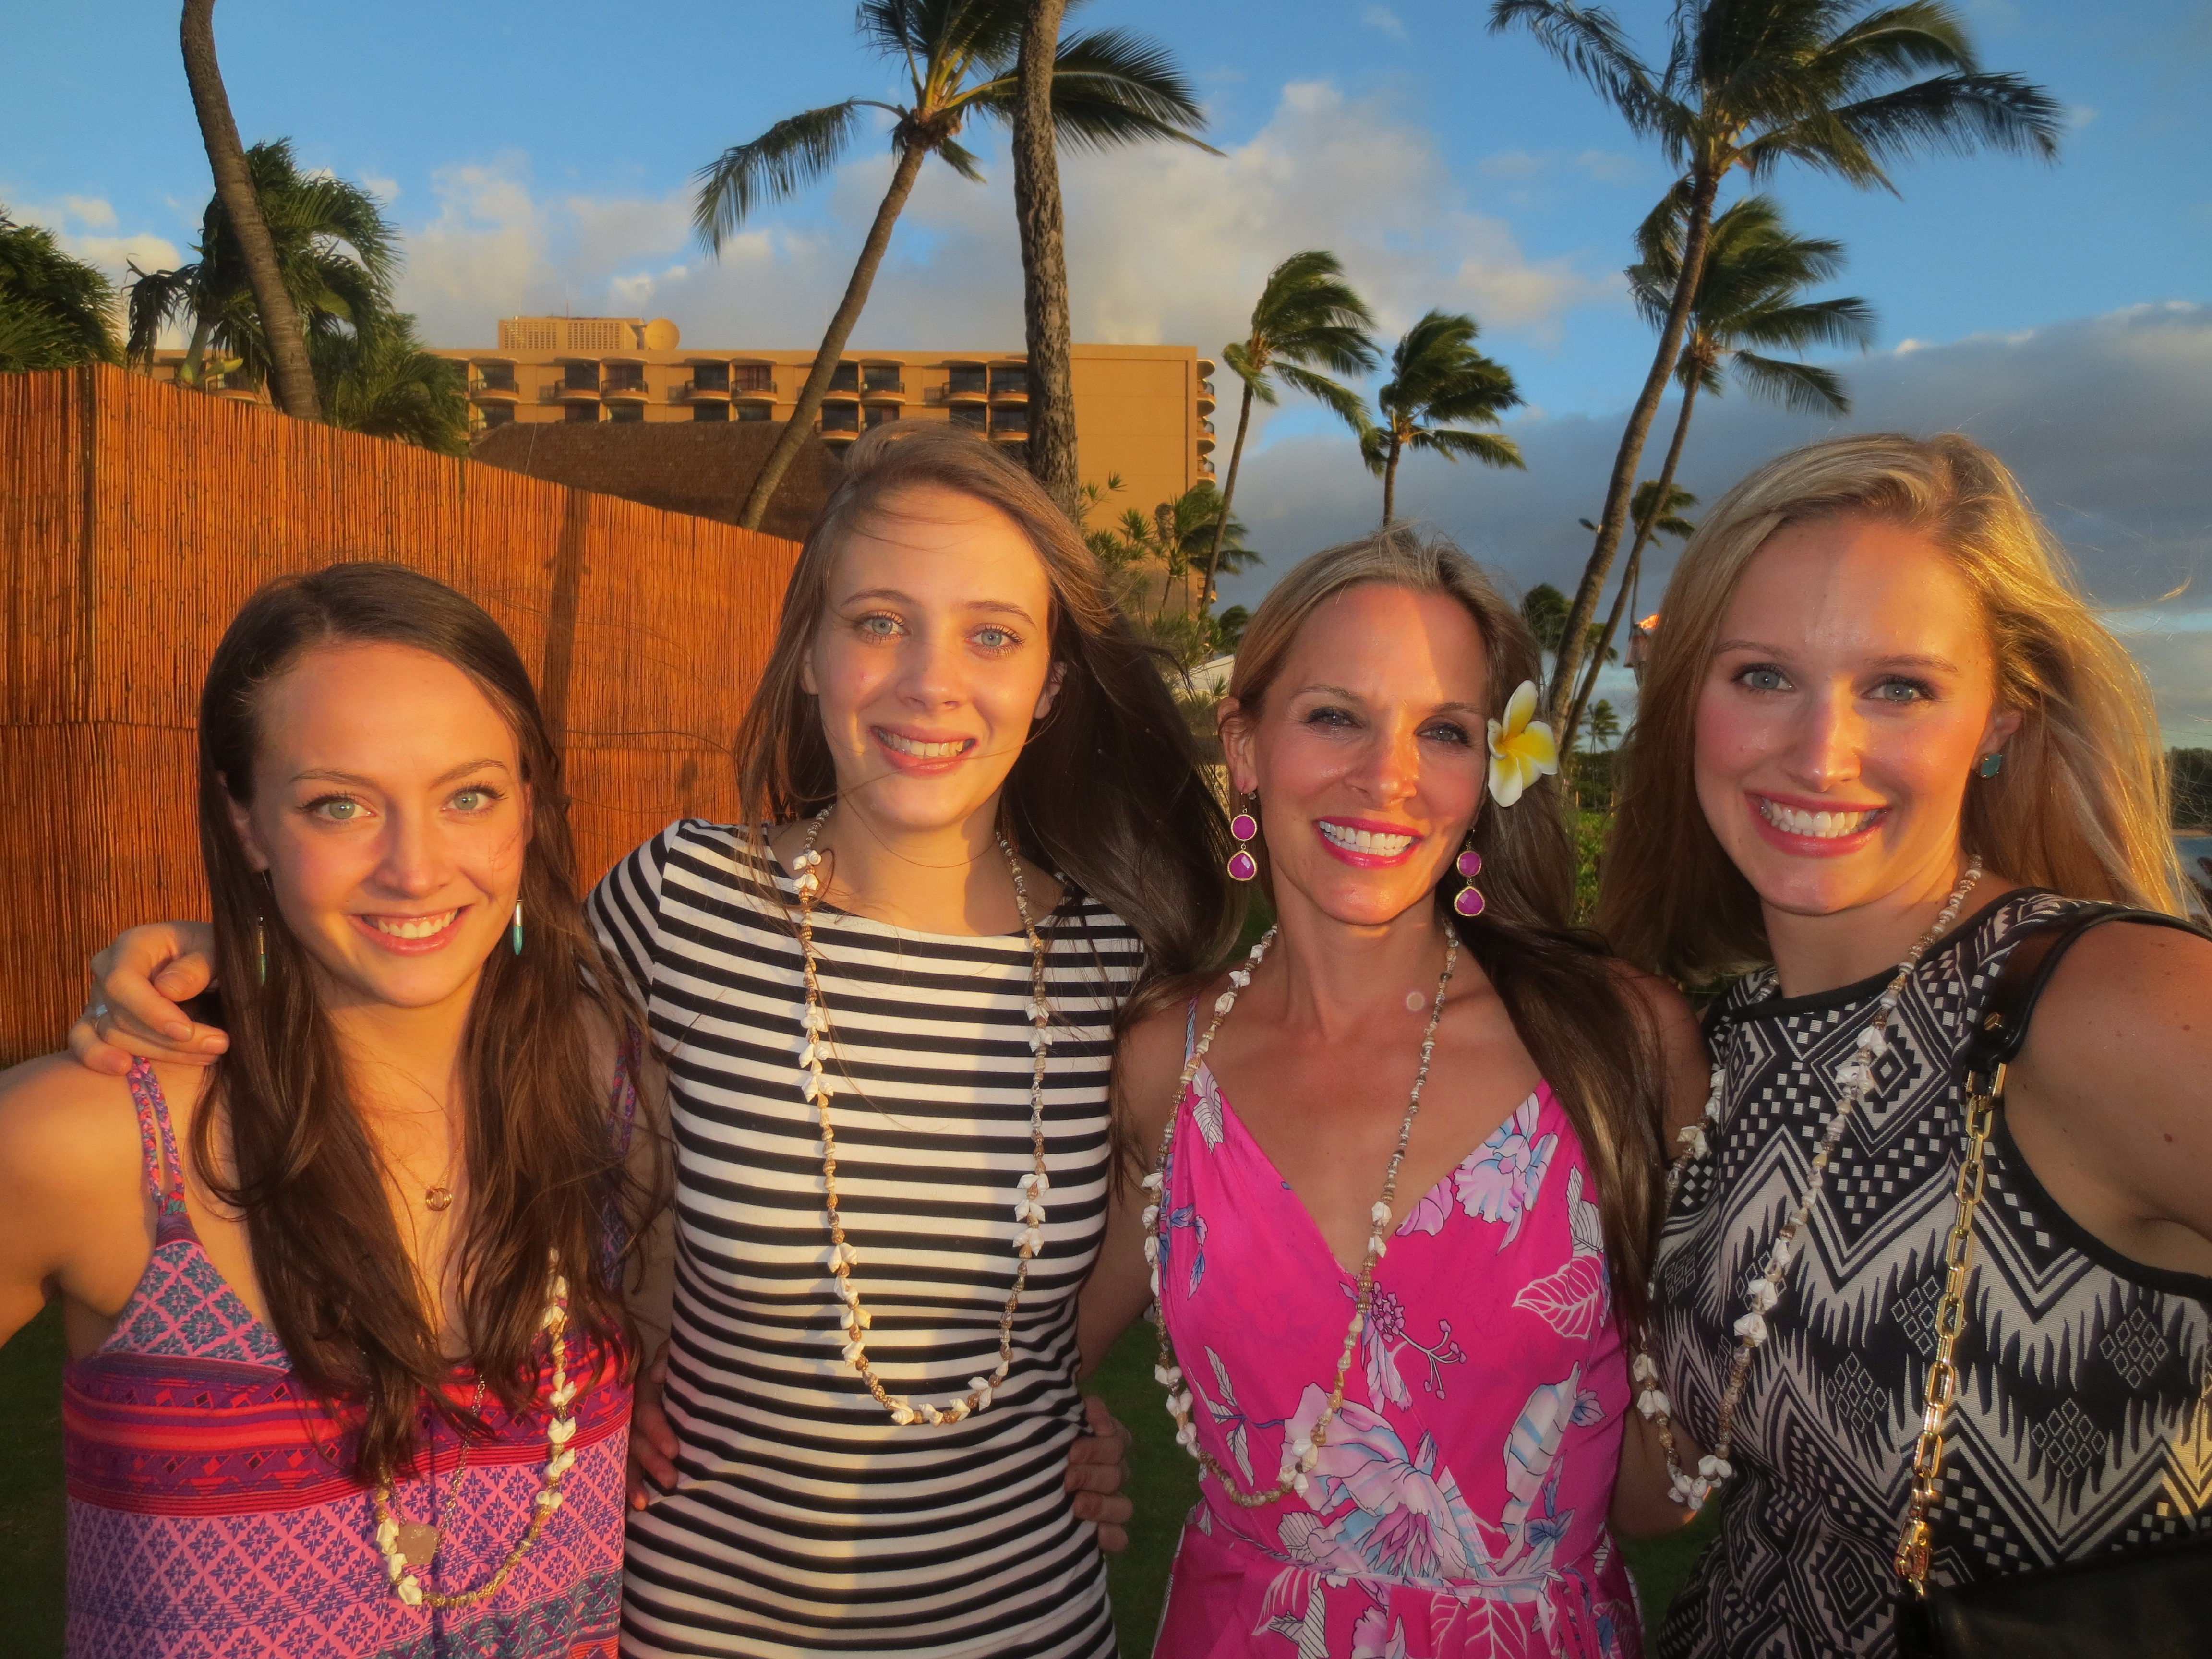 Cousin love at the Luau